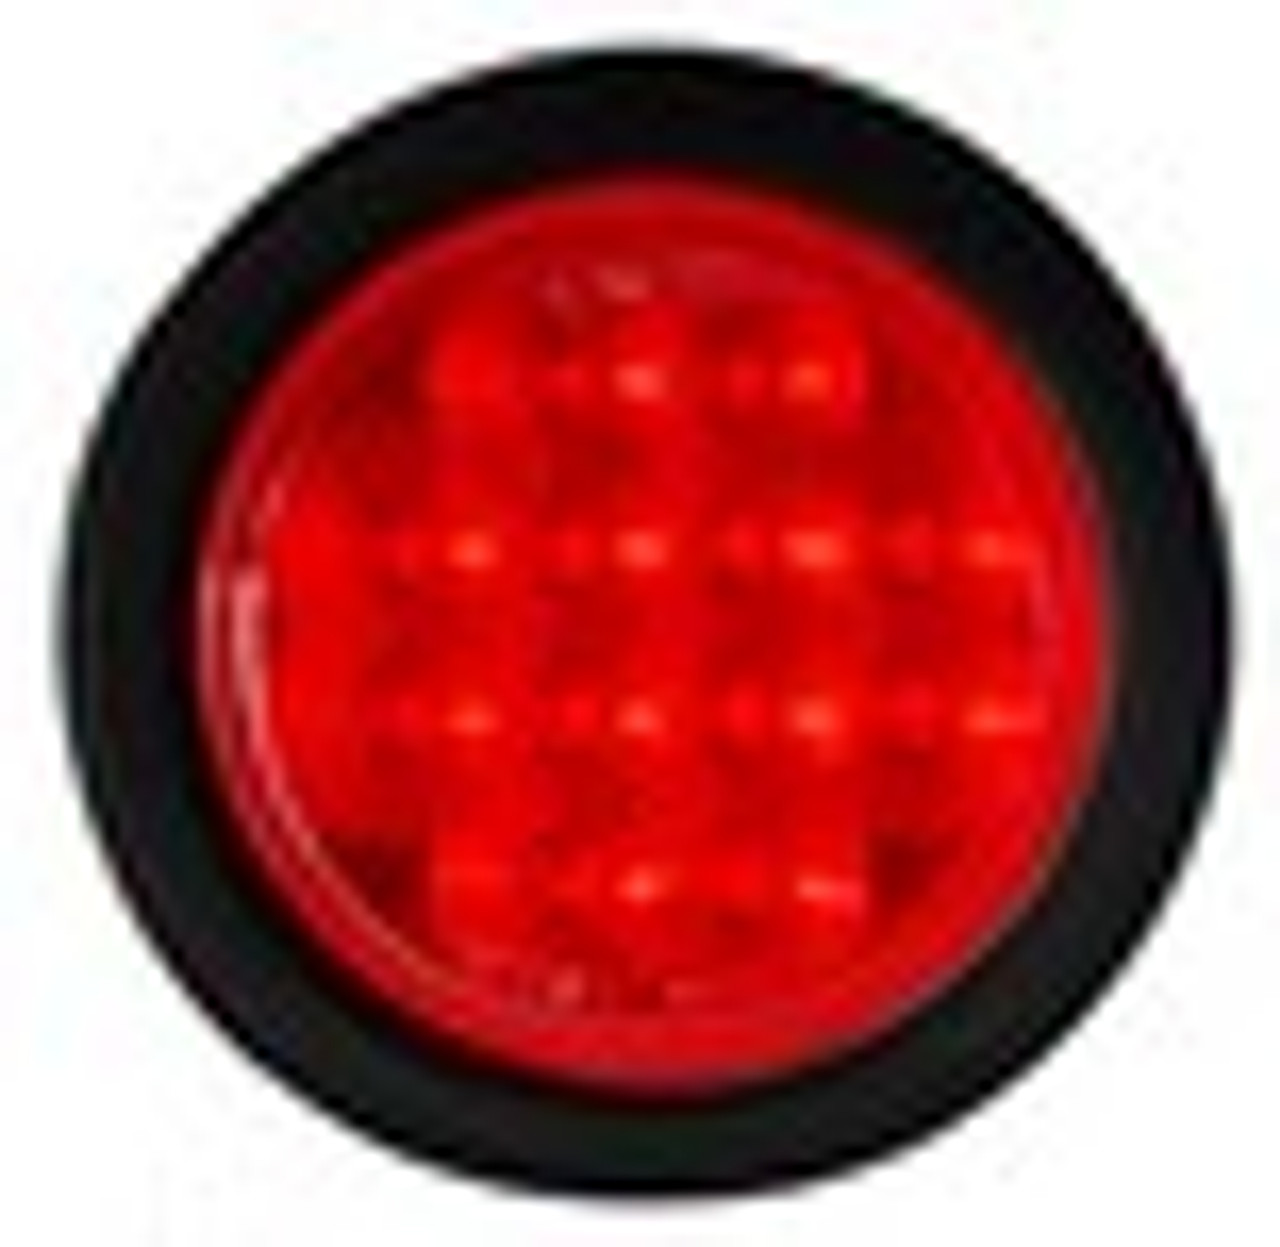 4 inch Round LED Stop, Tail Light with Rubber Grommet. Multi-Volt 12 & 24v DC Systems